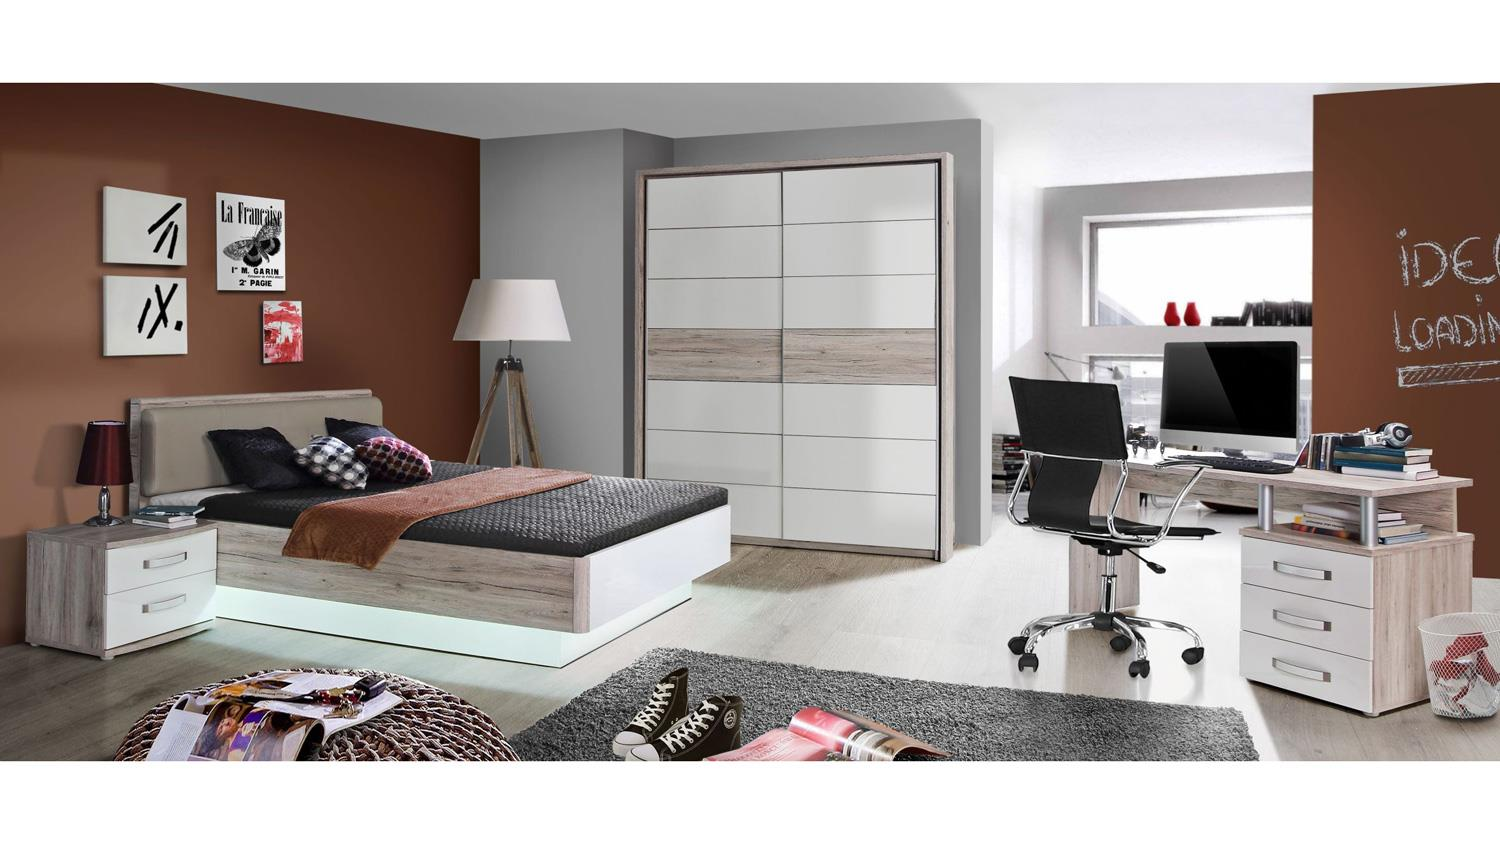 bett rondino jugendzimmerbett in sandeiche und wei. Black Bedroom Furniture Sets. Home Design Ideas